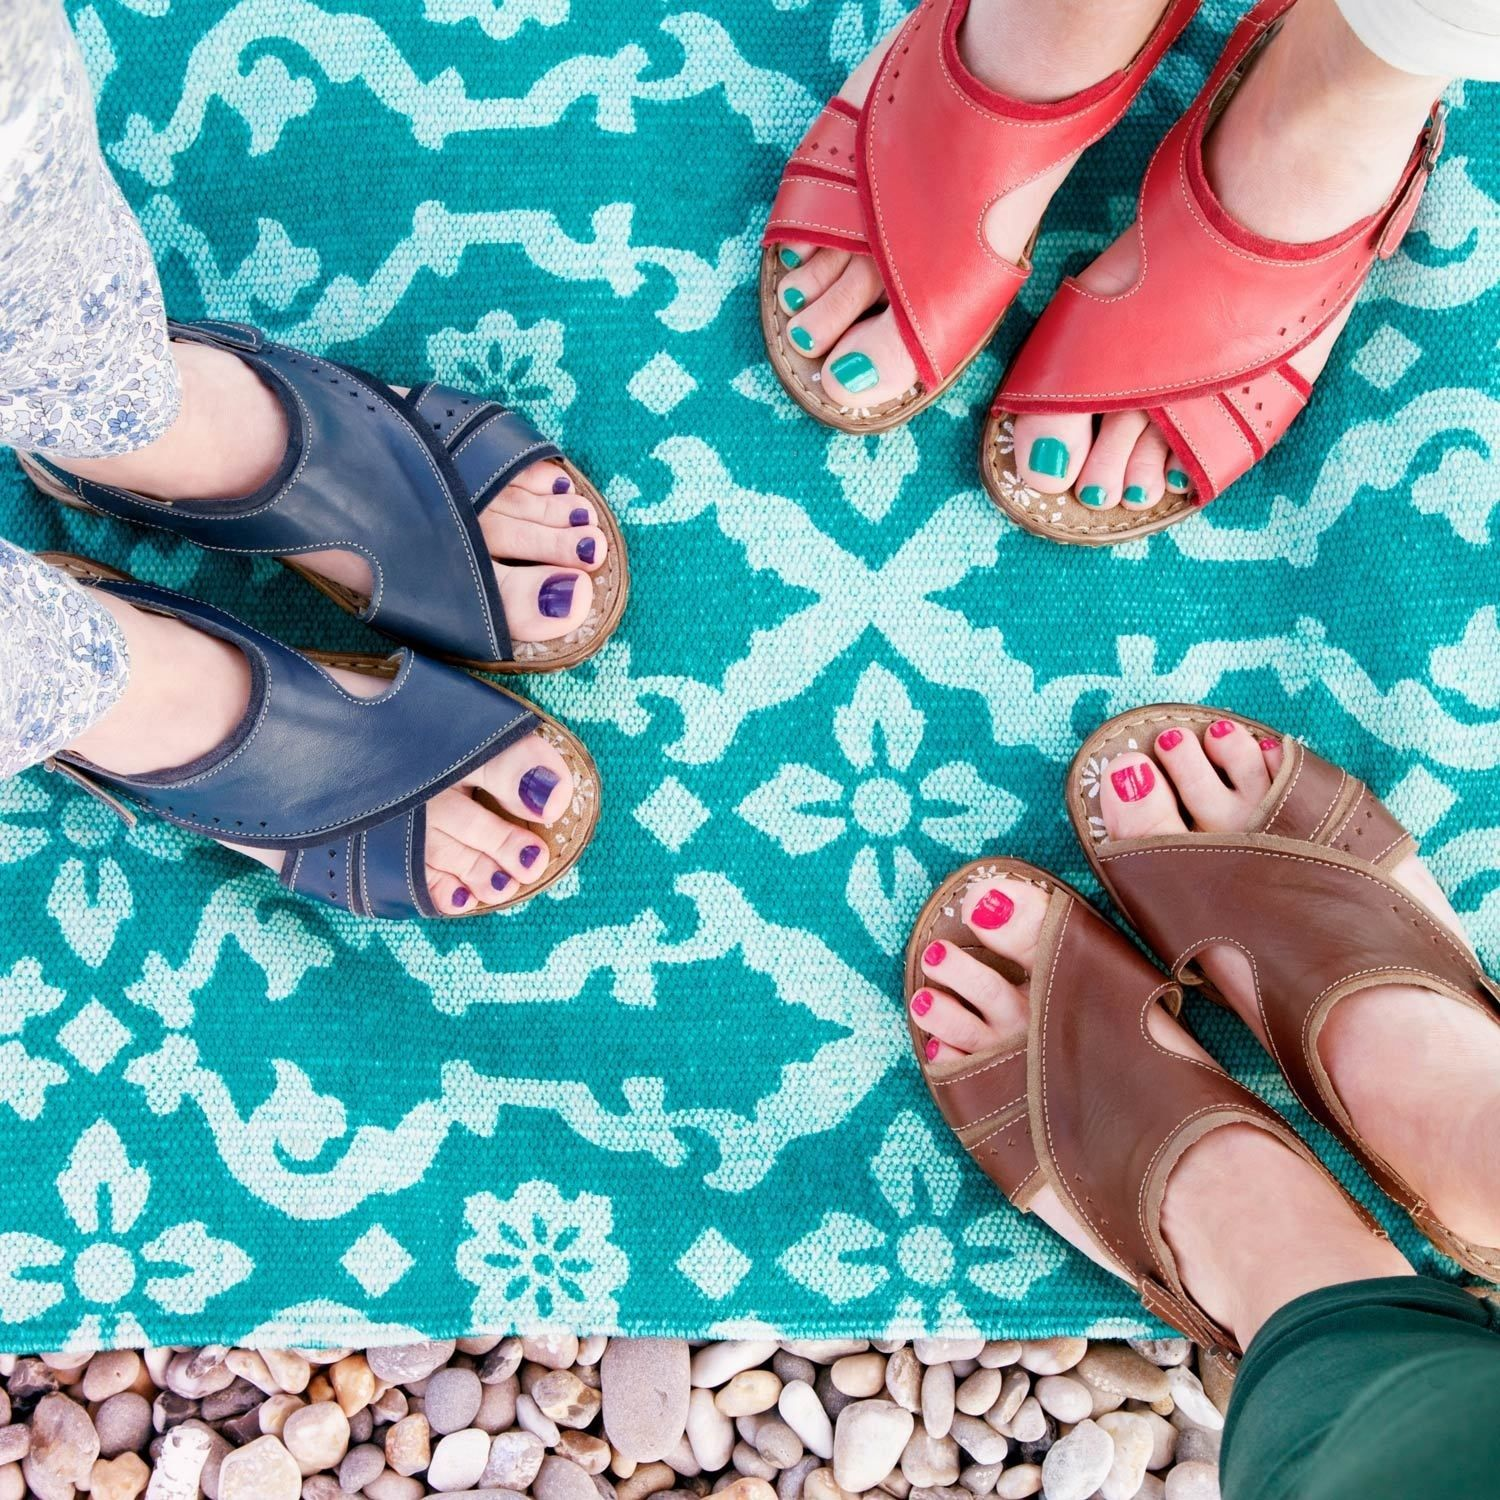 Sandals shoes holidays - Souk Holiday Shop Ladies Moshulu Online Shop Bright Colourful Shoes